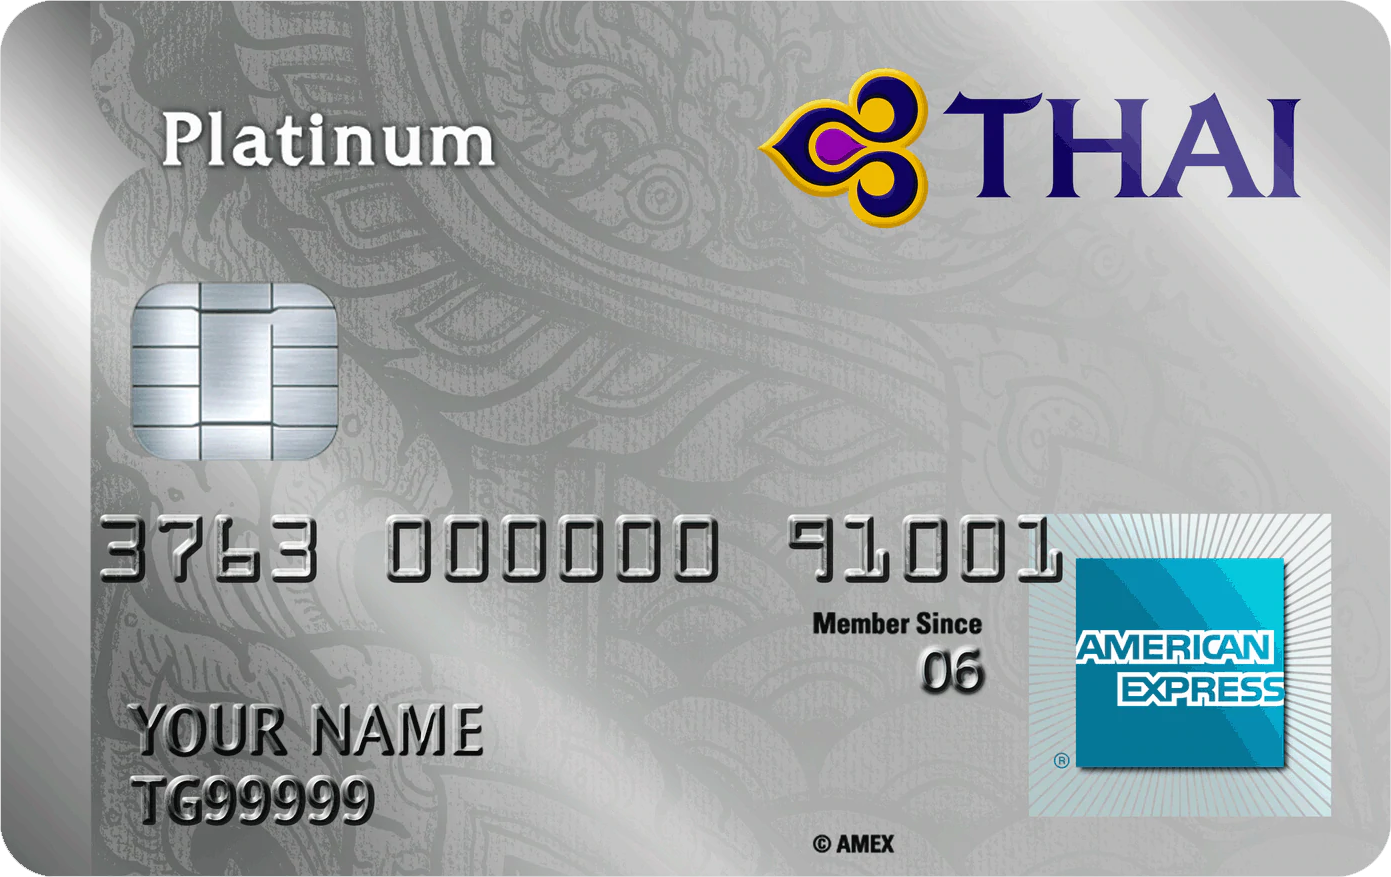 Thai American Express Credit Card